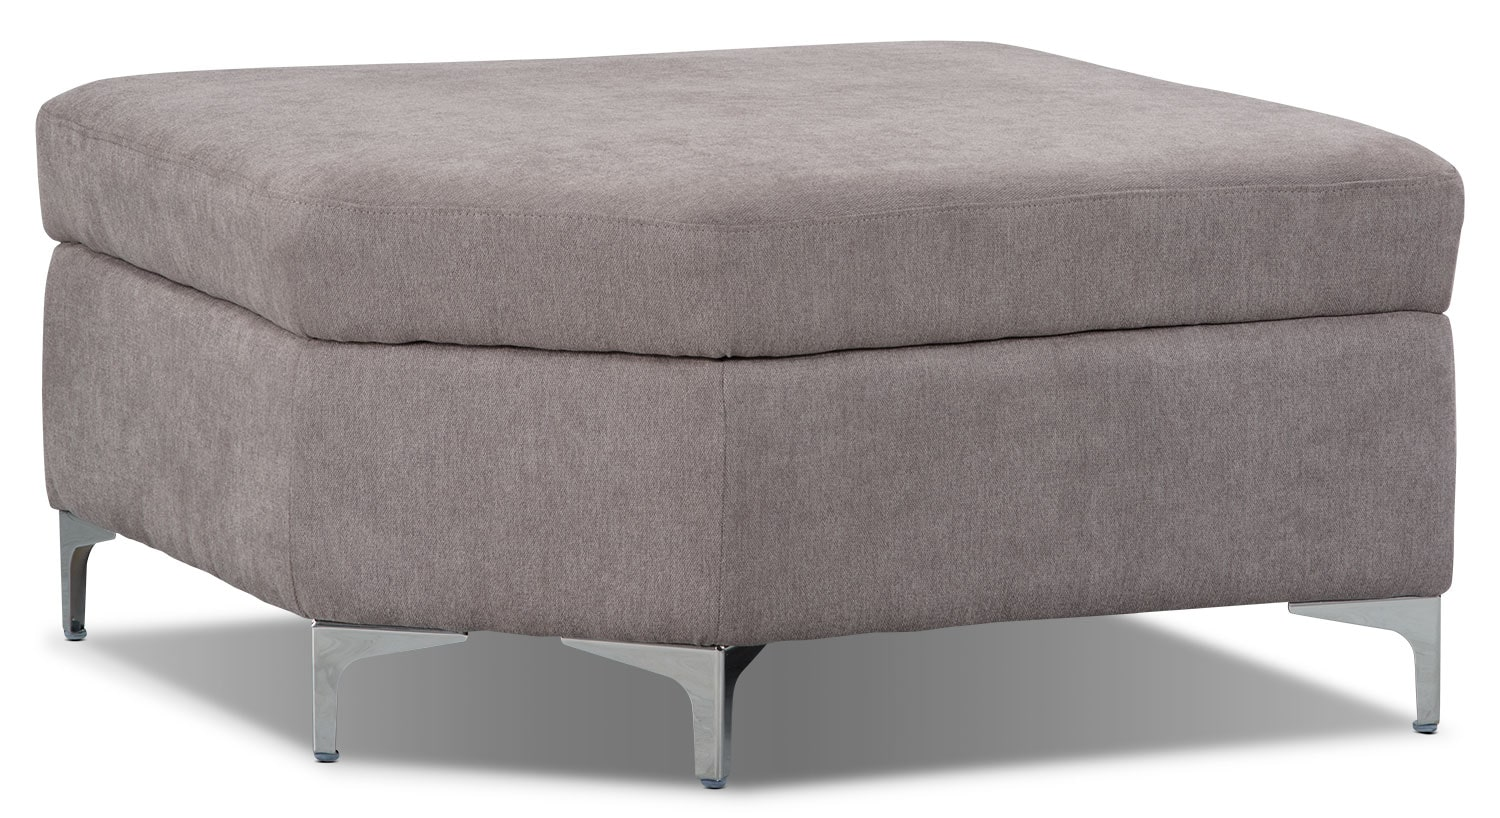 London Linen-Look Fabric Storage Ottoman – Dove